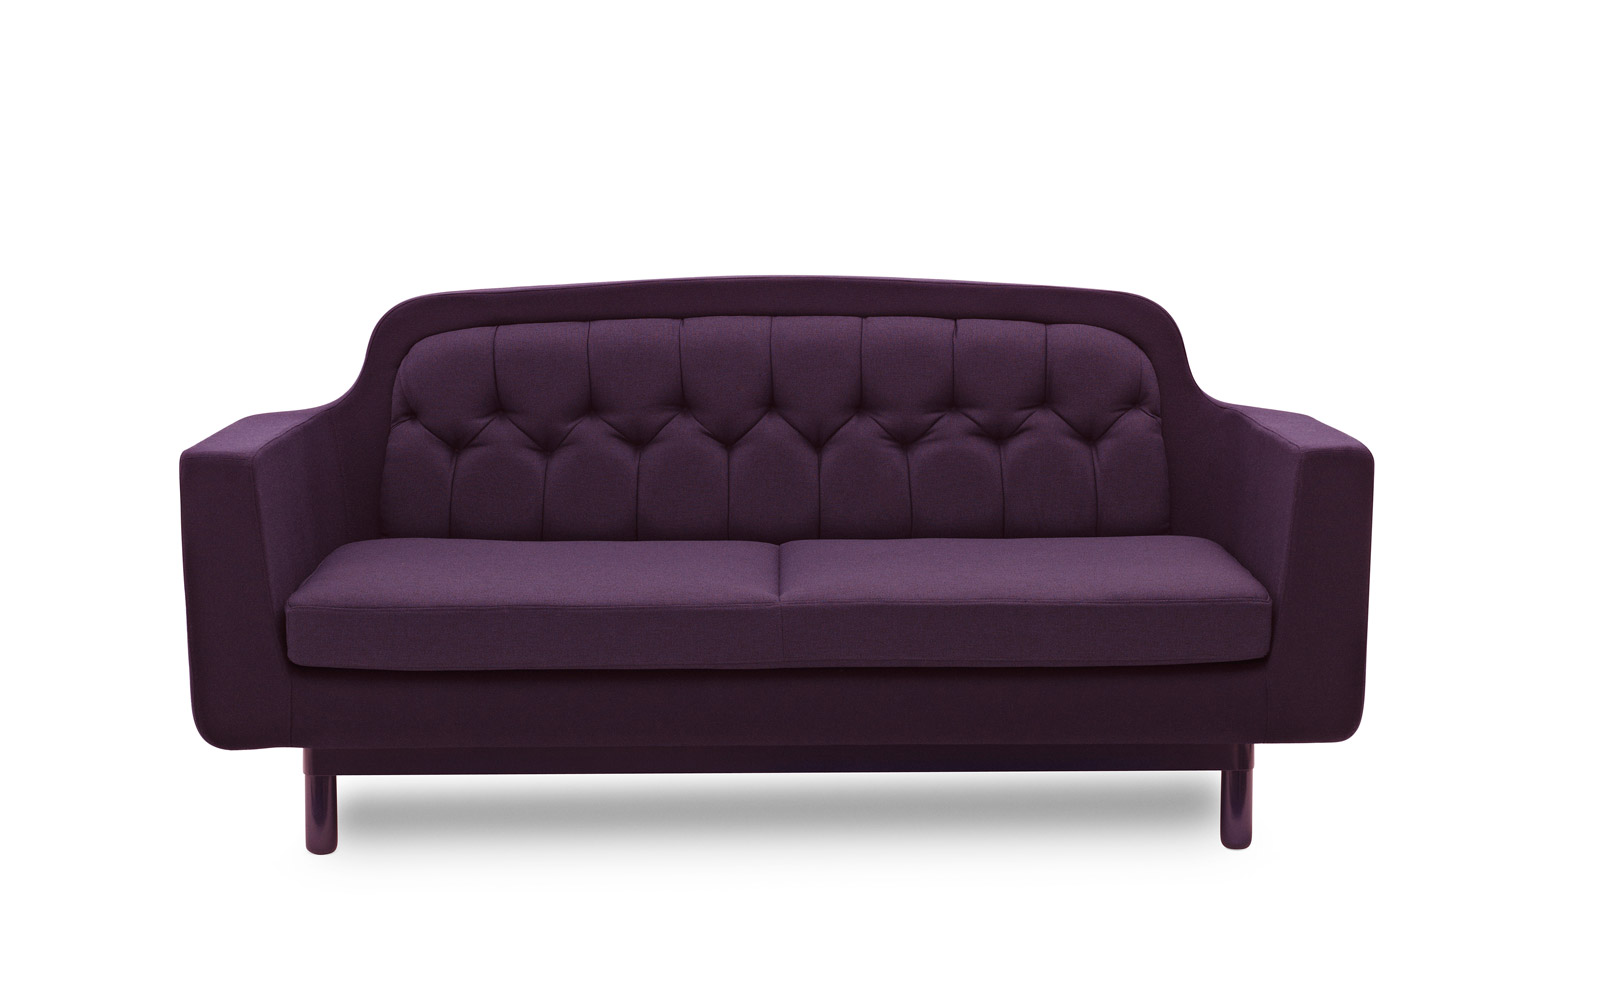 Onkel sofa recognizable scandinavian design fabrics for Purple sofa